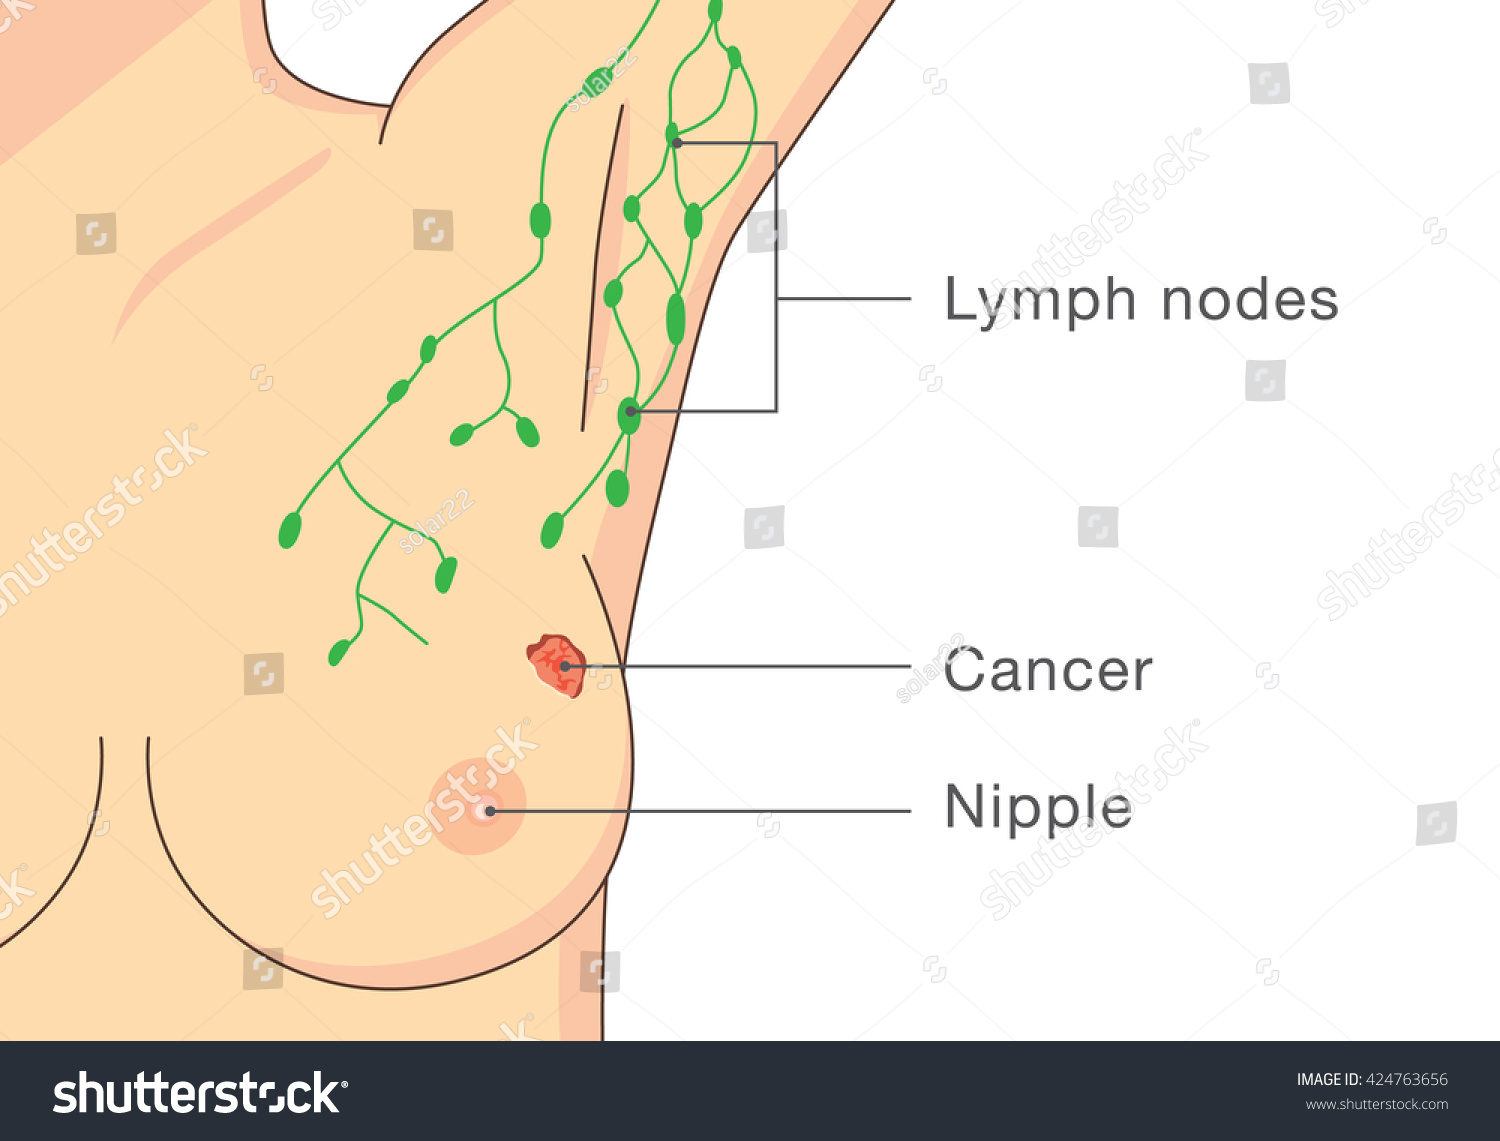 location of lymph nodes in armpit diagram duplex outlet wiring the gallery for gt